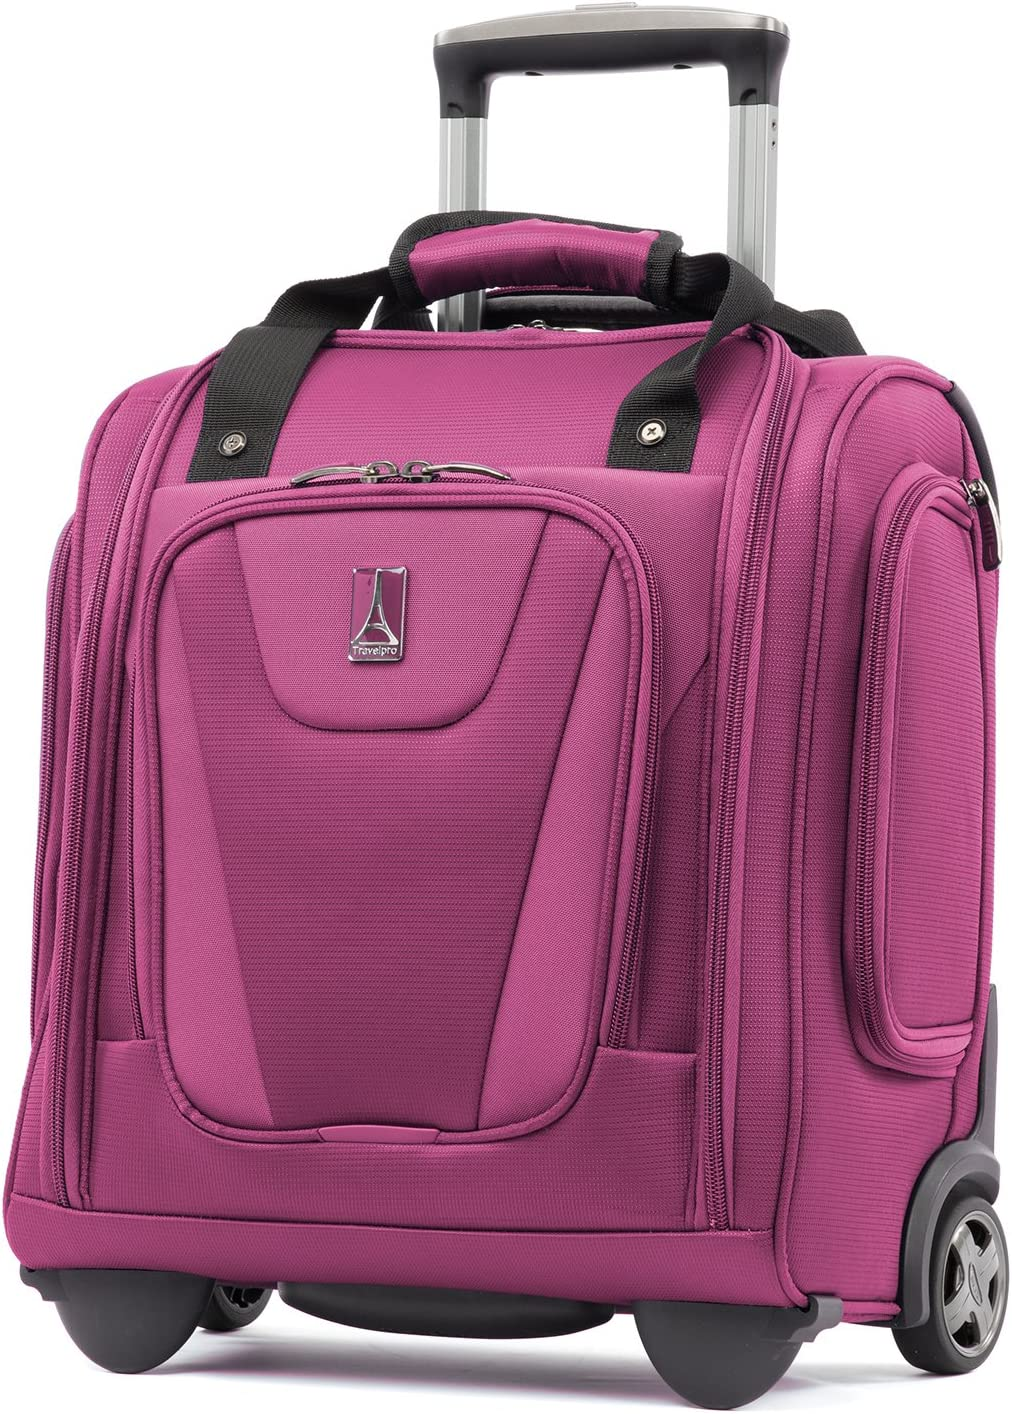 Travelpro Maxlite 4-Rolling Underseat Carry-On Tote Bag, Magenta, One Size